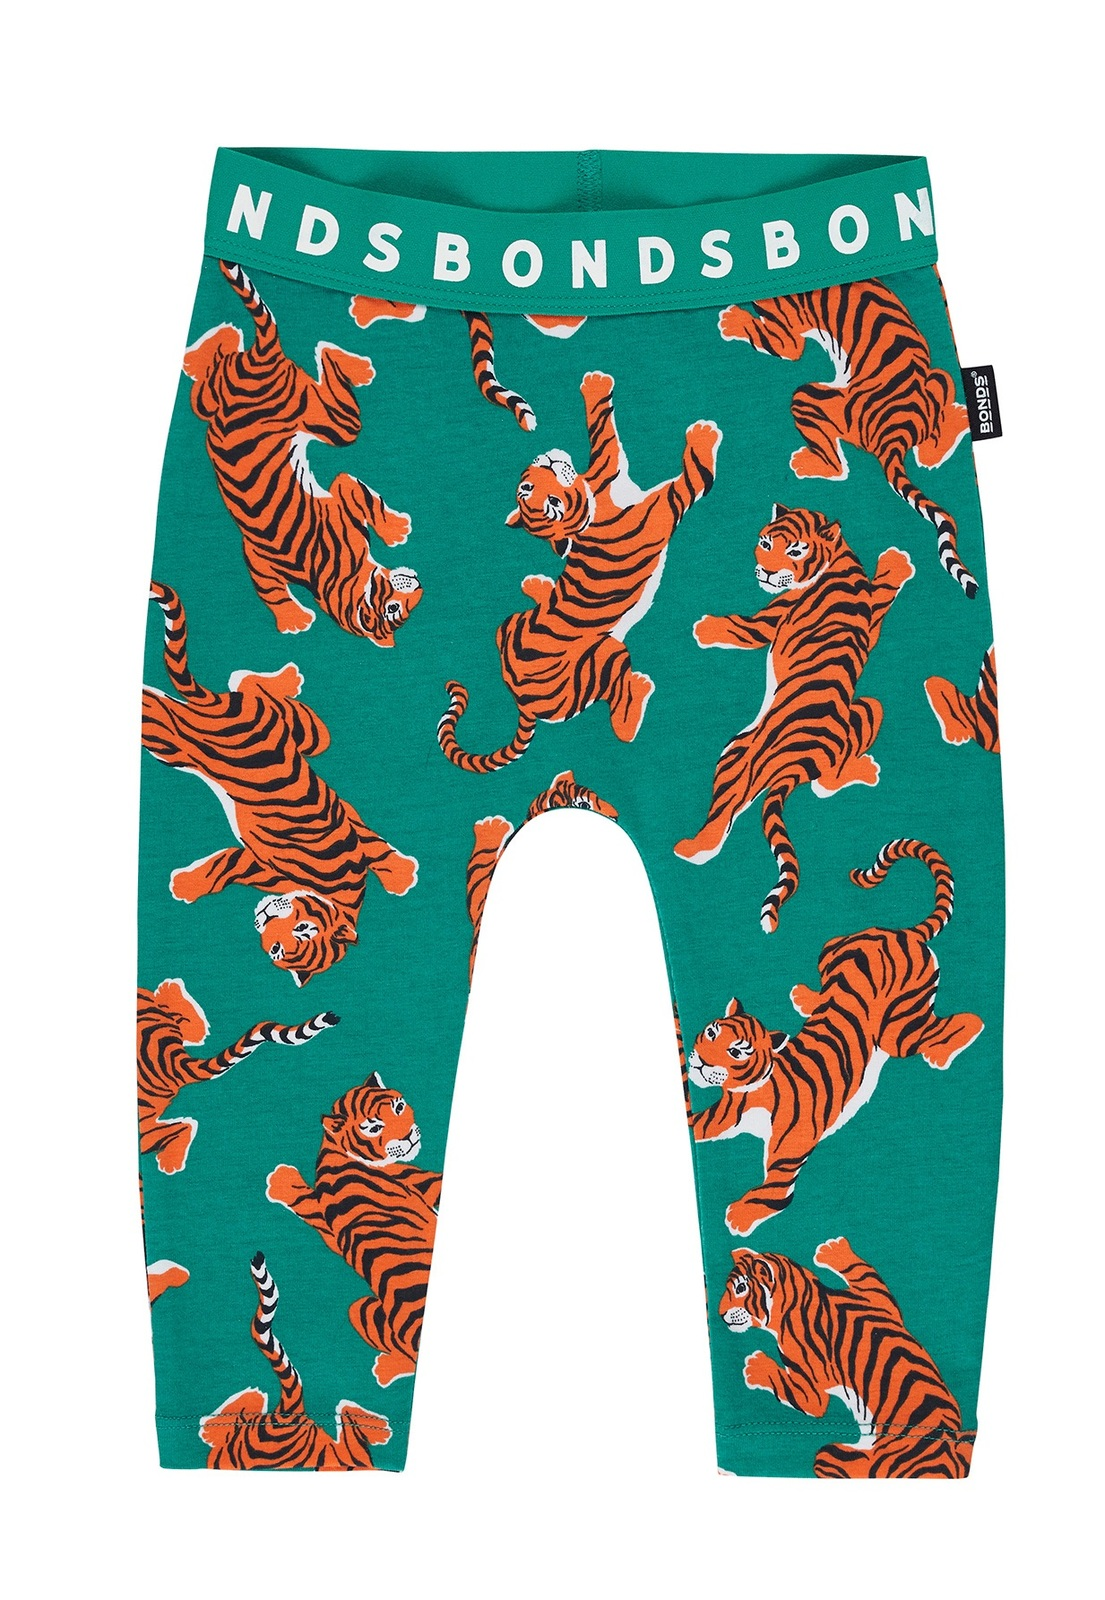 Stretchies Leggings - Tiger (Size 1) image